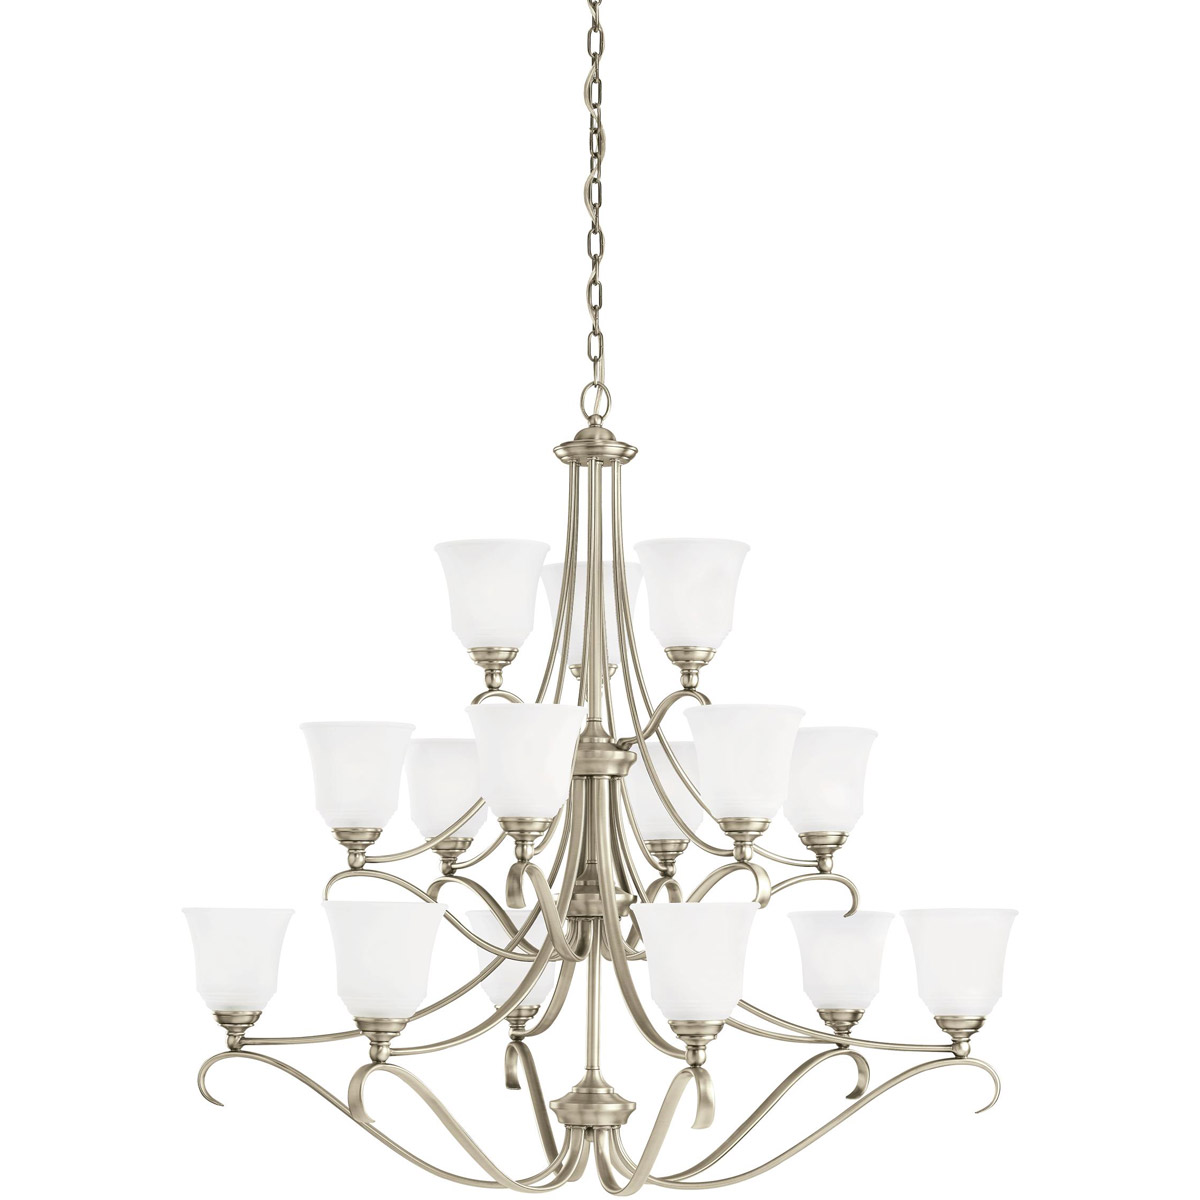 Sea Gull Lighting Parkview 15 Light Chandelier in Antique Brushed Nickel 31382-965